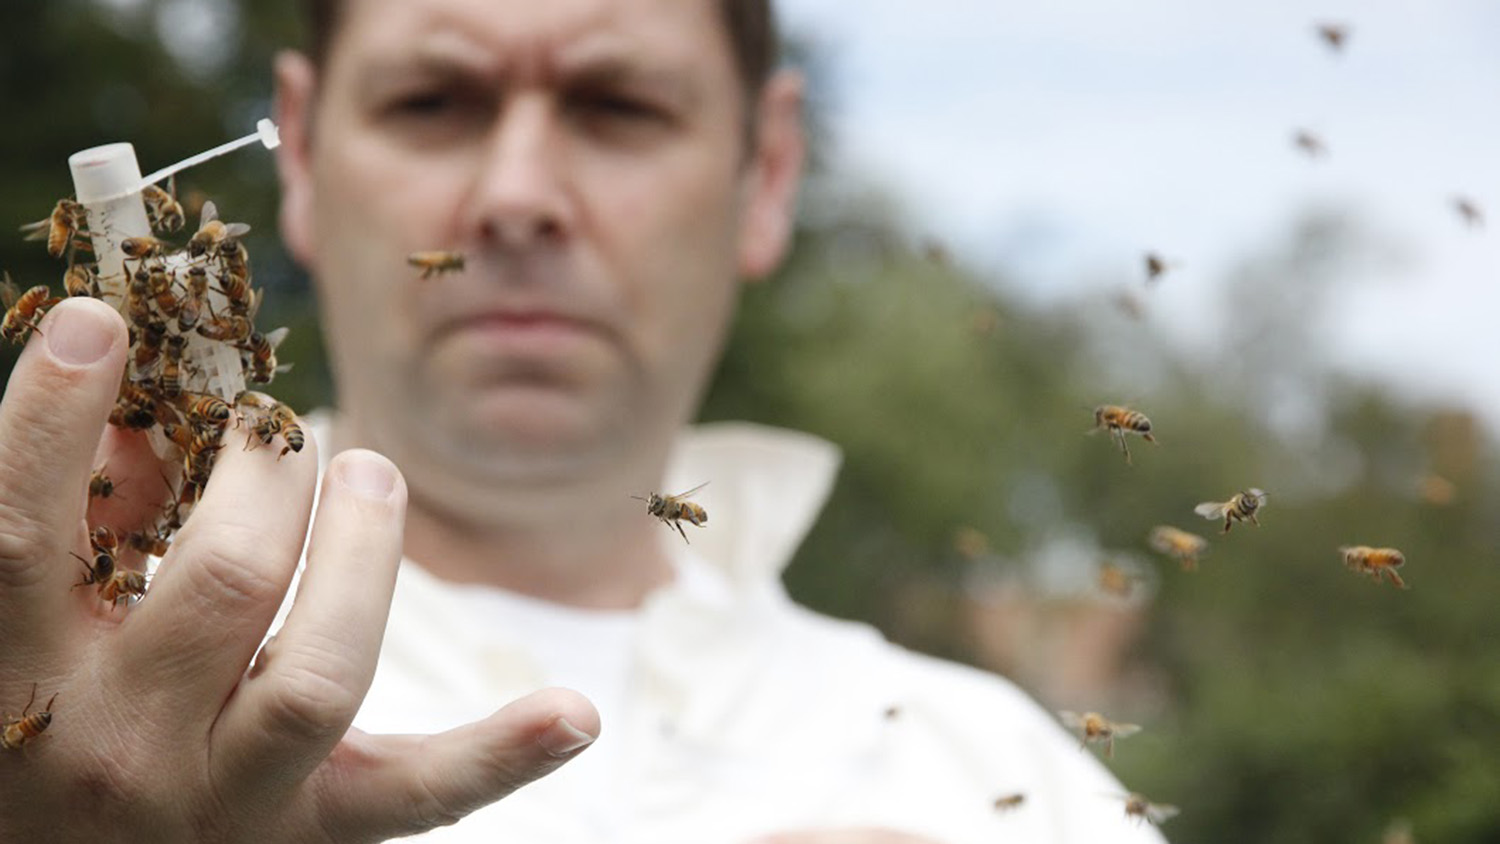 David Tarpy with honey bees